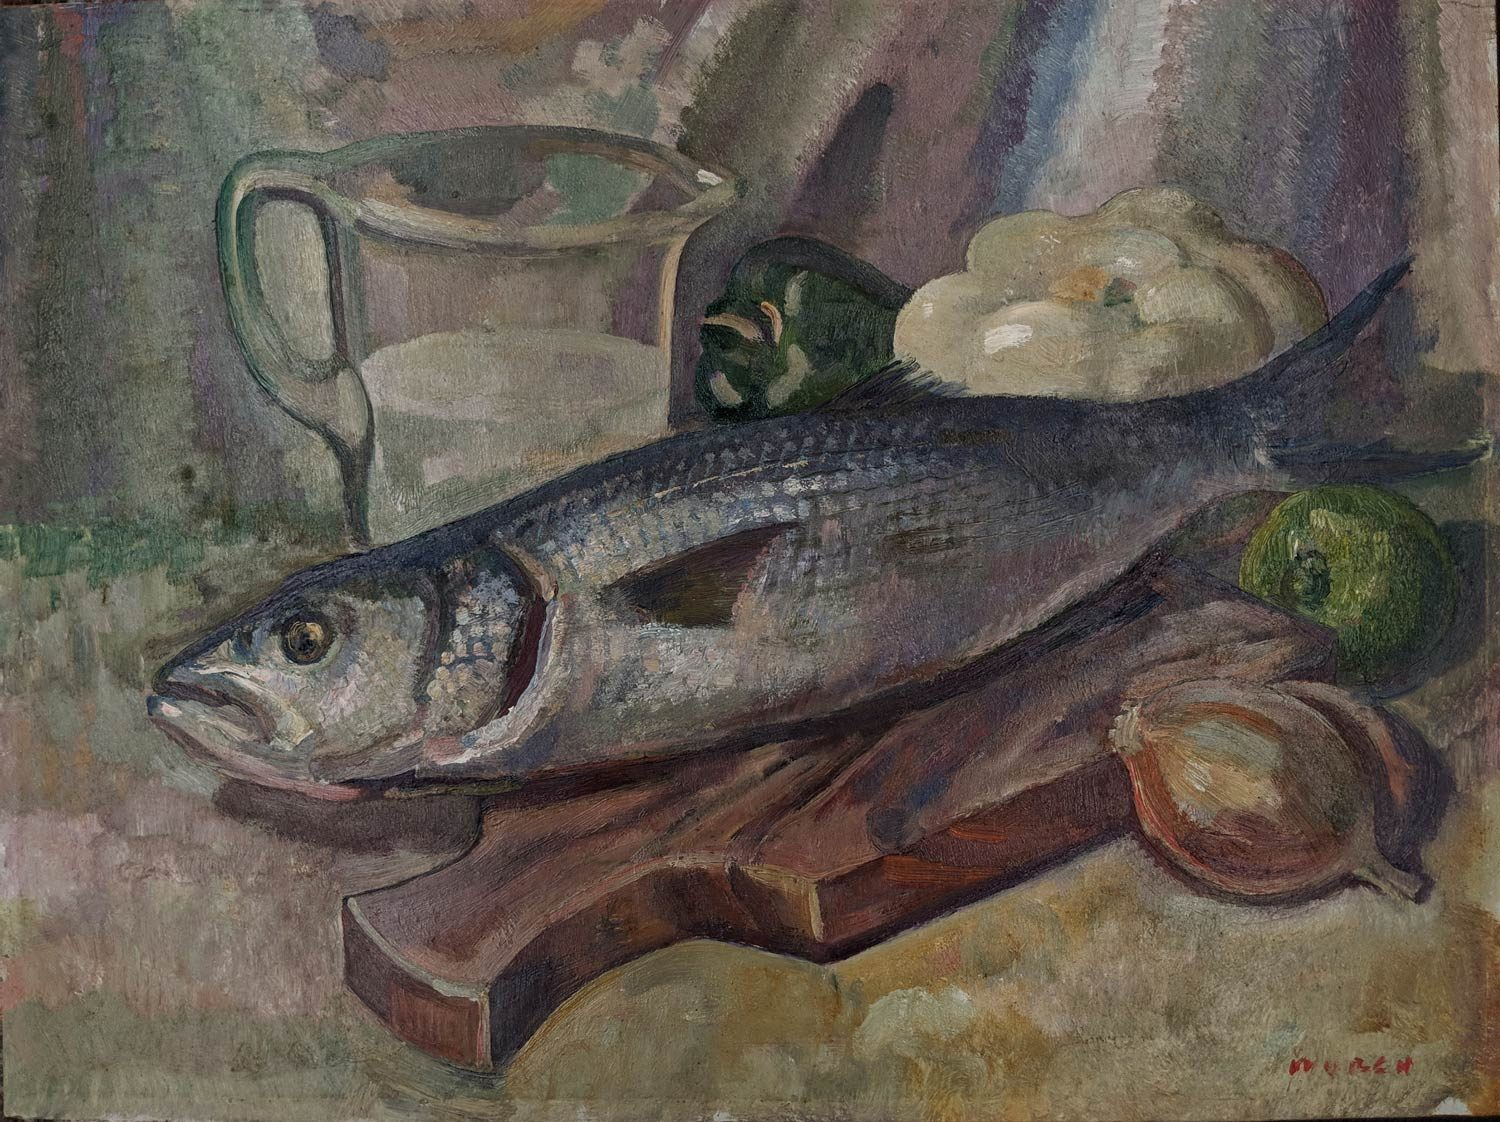 Arthur James Murch – Still Life With Fish